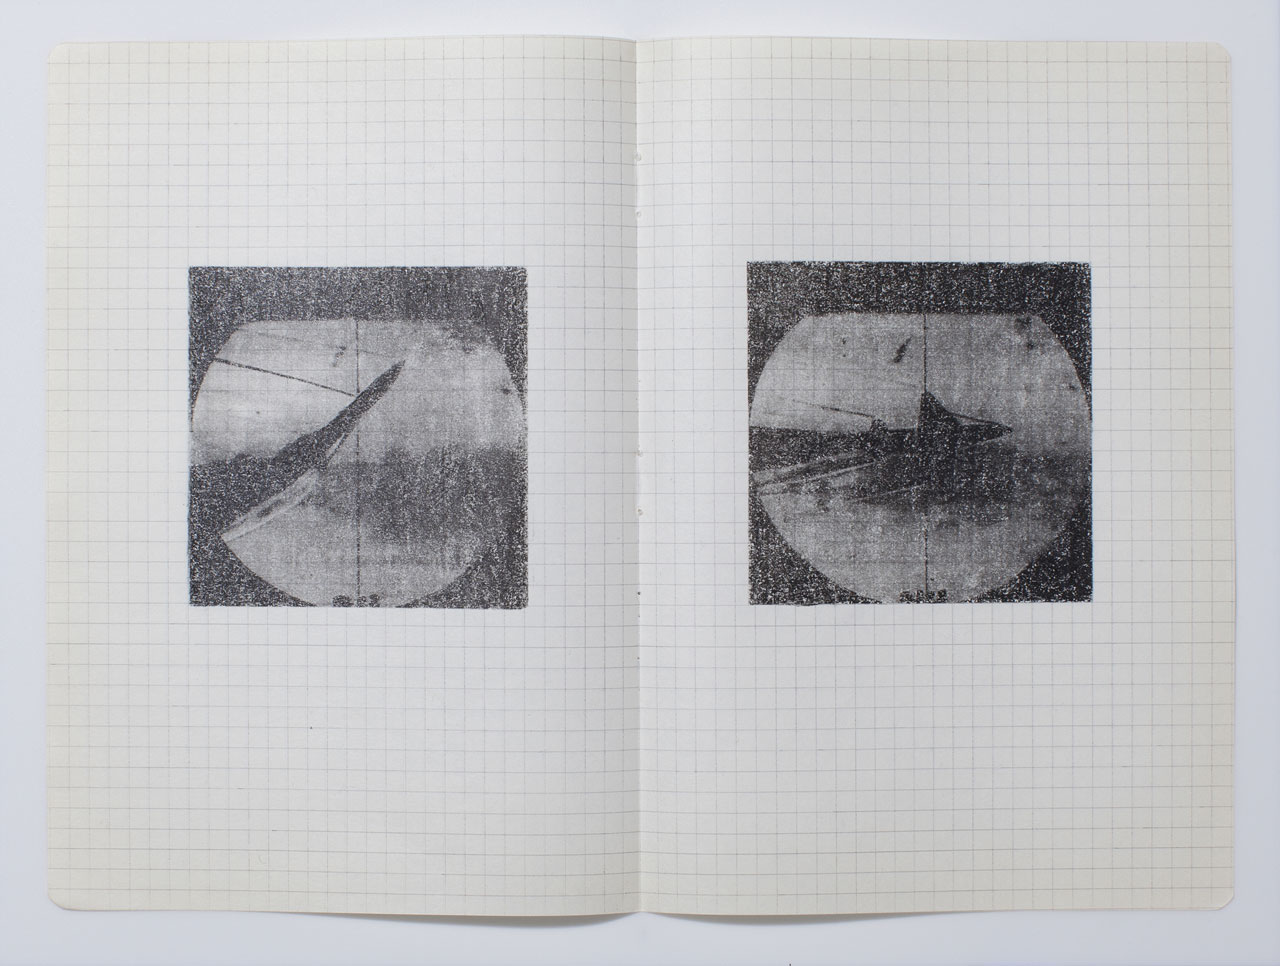 Hajra Waheed, KH-21, Notes 5/32, 2014, Xylene Transfer & Graphite on Paper. Image courtesy the artist.